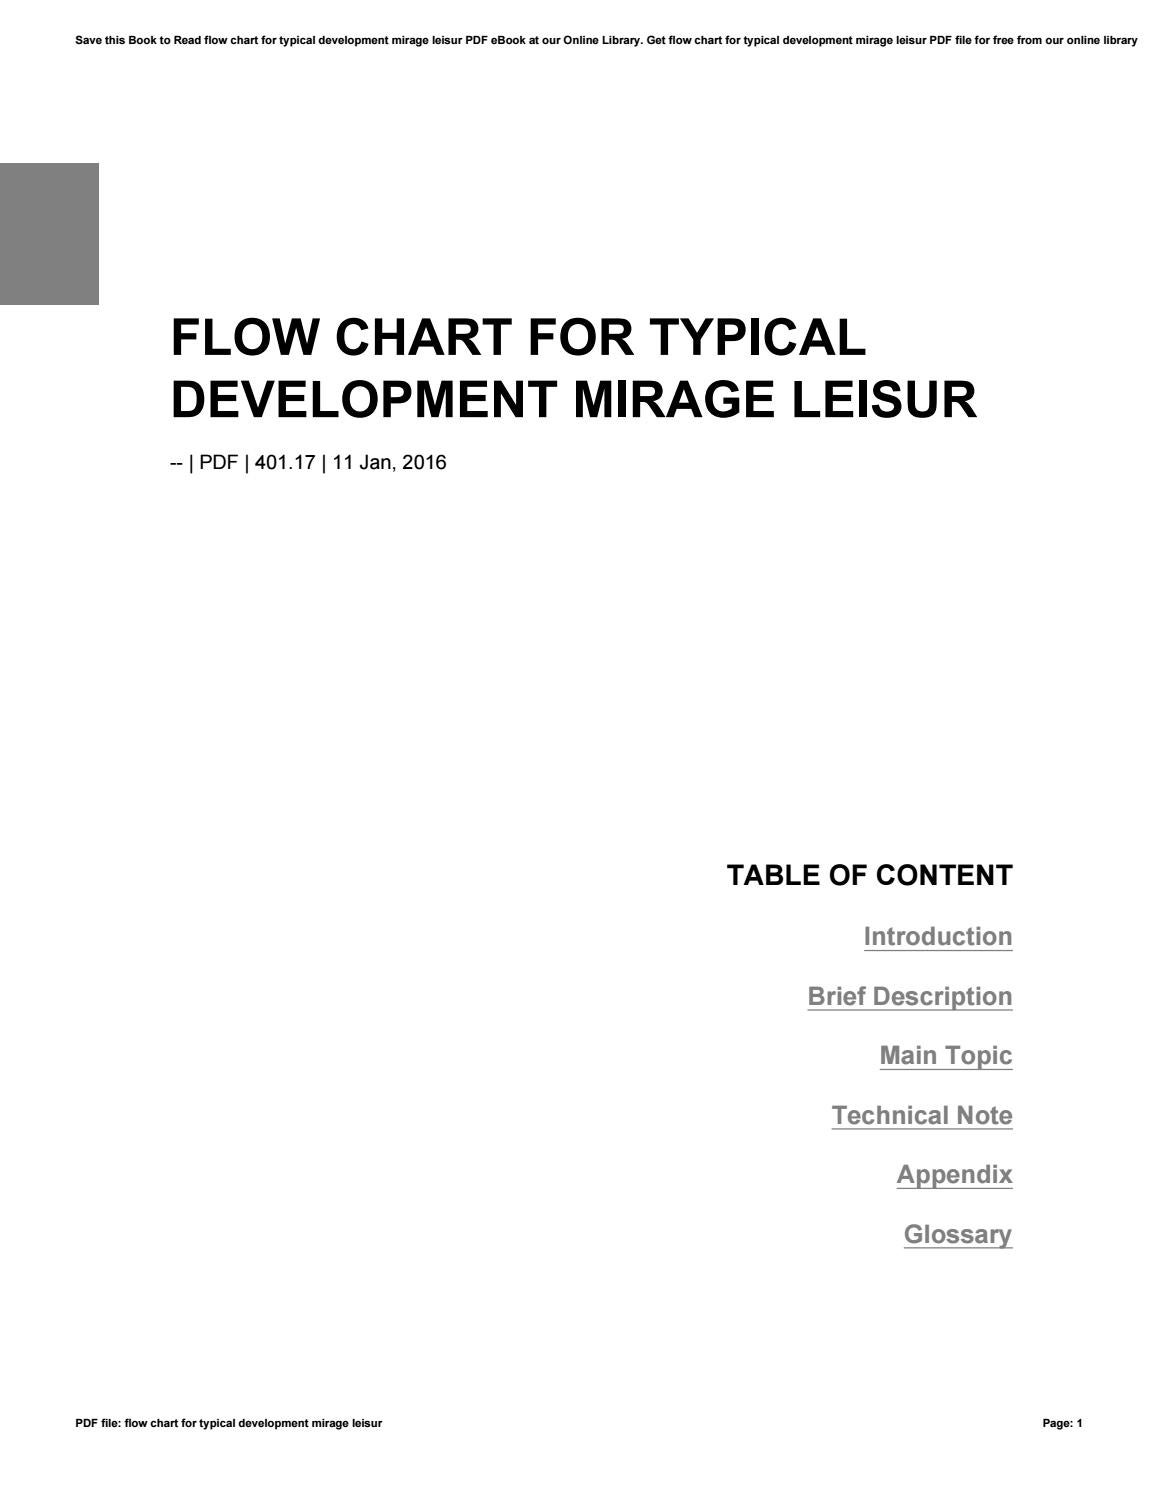 Flow chart for typical development mirage leisur by novie35mislah flow chart for typical development mirage leisur by novie35mislah issuu nvjuhfo Choice Image